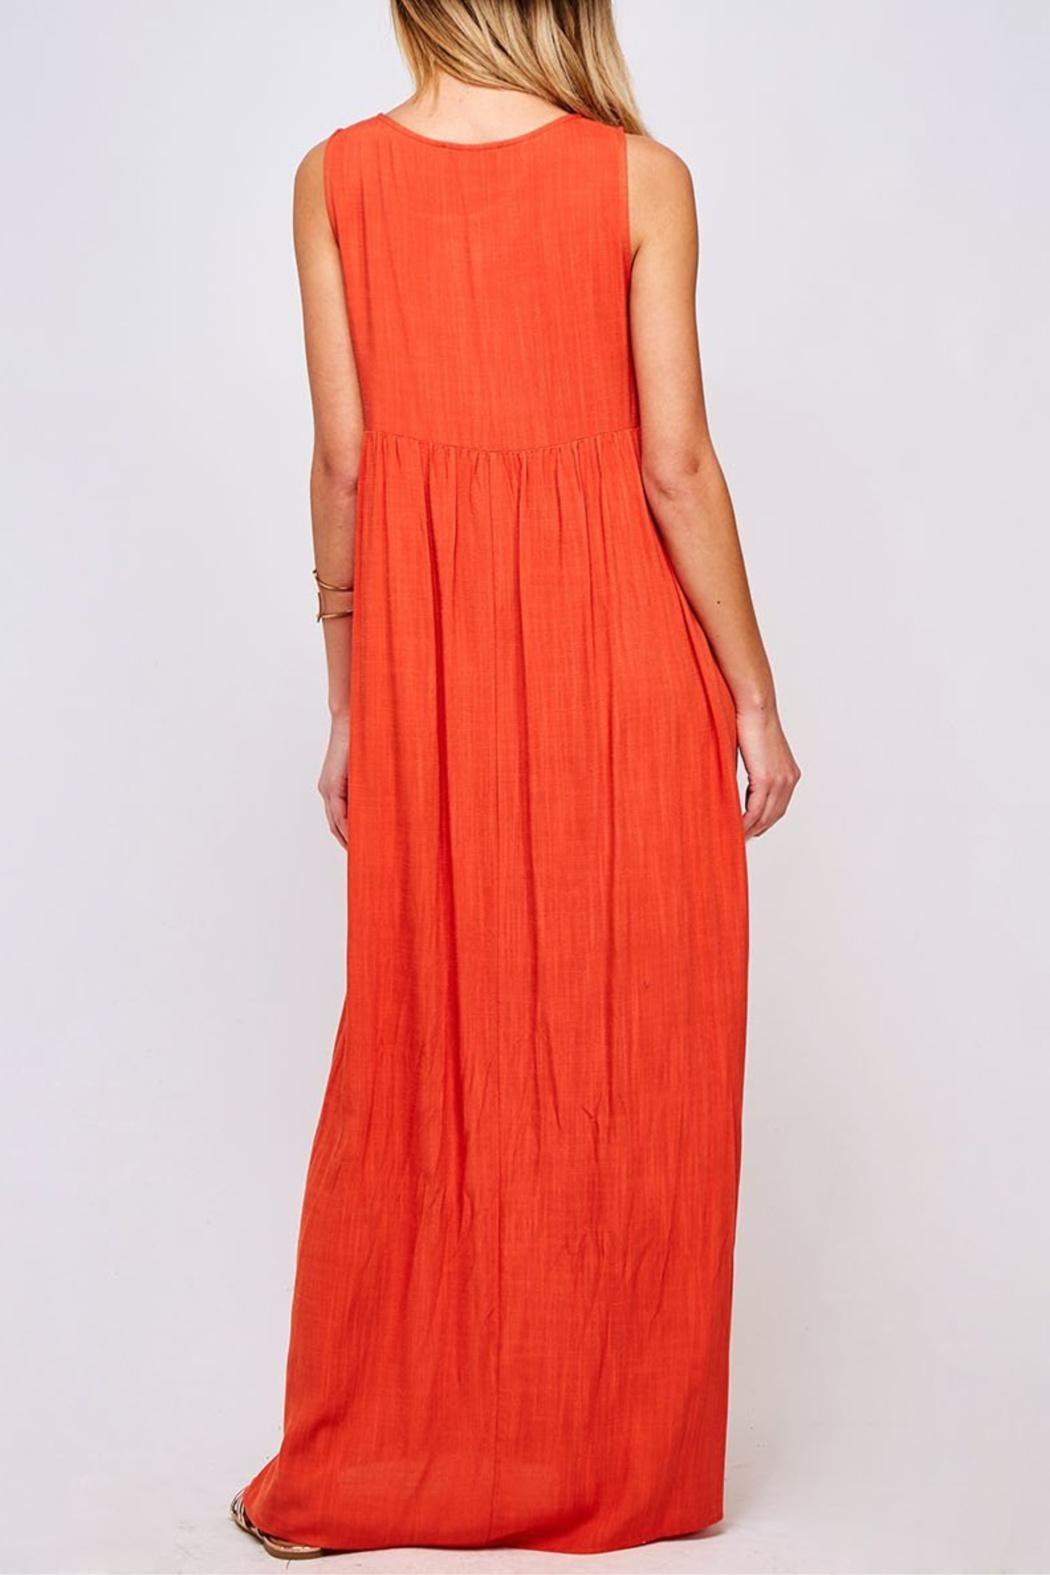 Peach Love California Solid Maxi Dress - Front Full Image